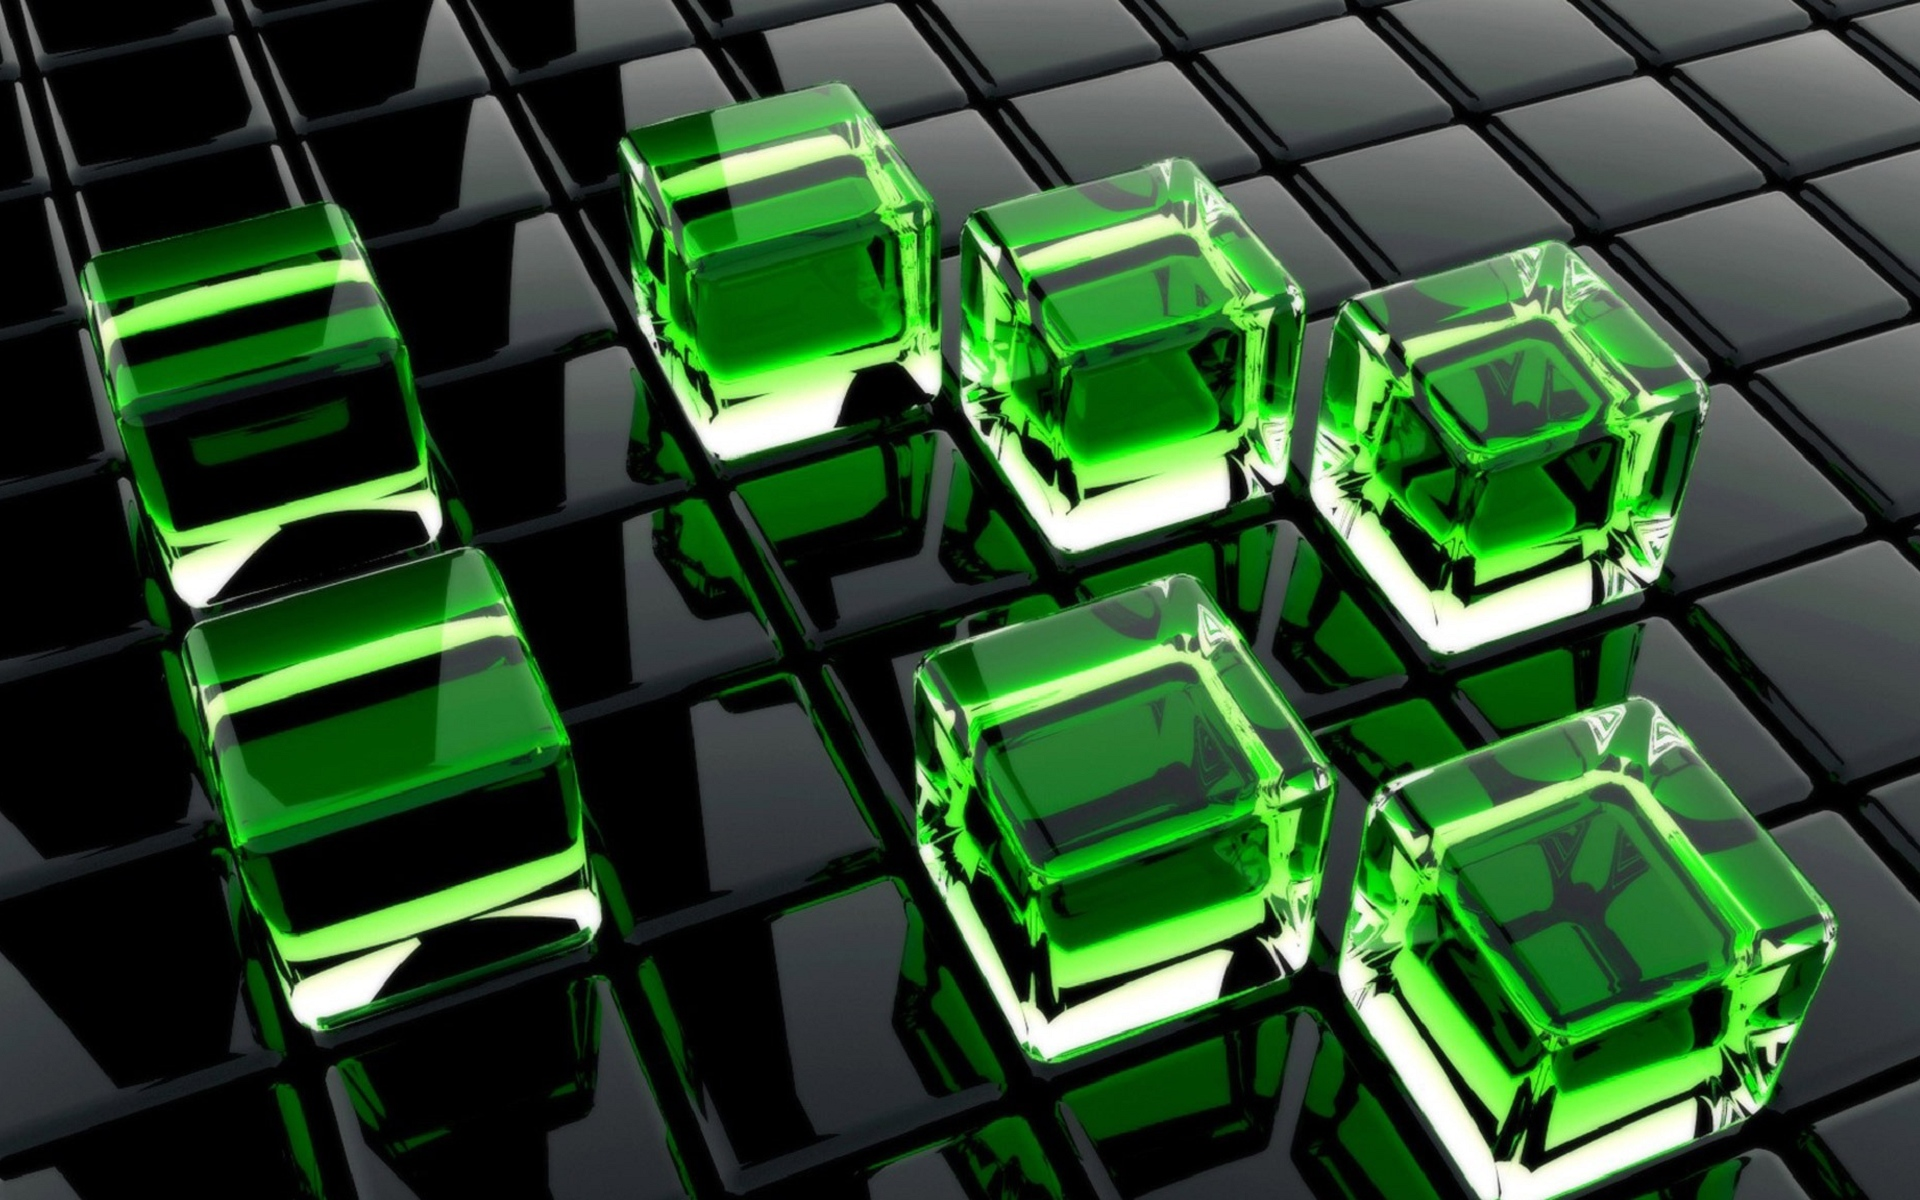 3d Cube Wallpaper 230 HD Wallpaper 3D Desktop Backgrounds 1920x1200